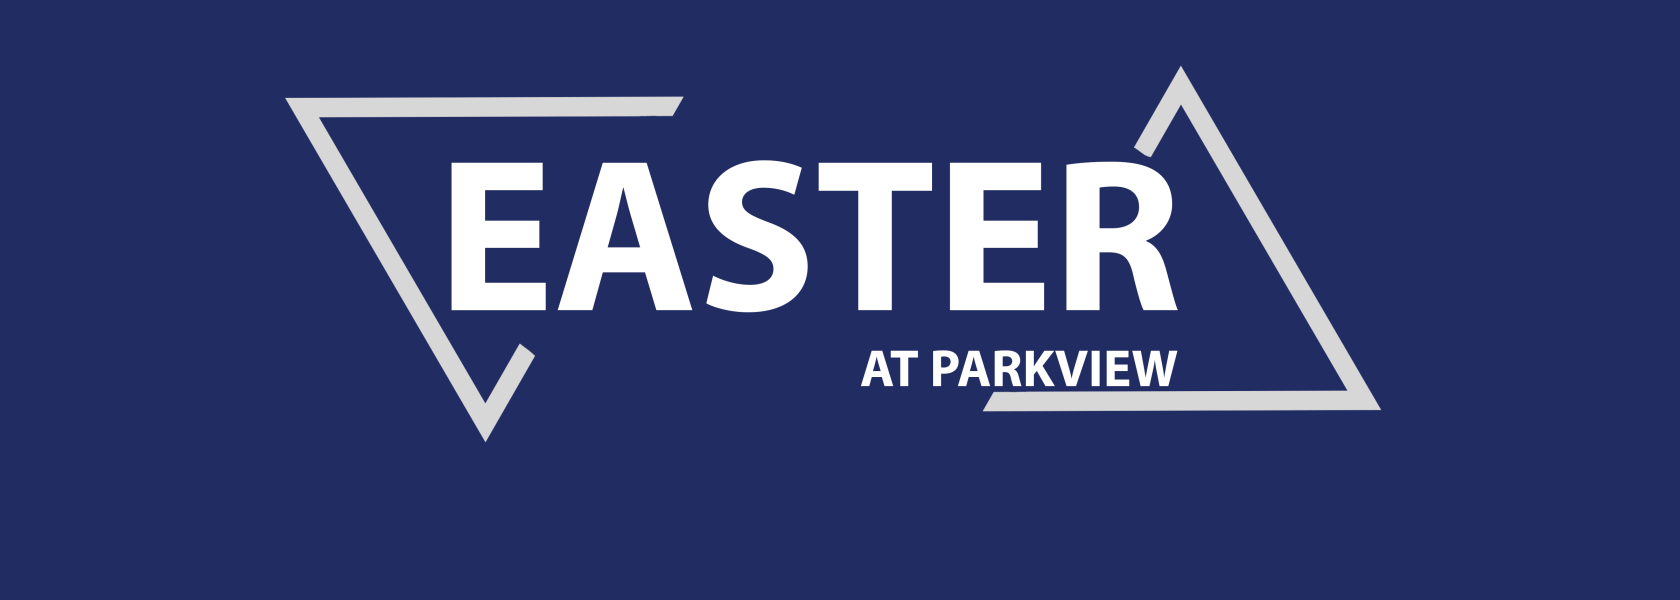 /images/r/easter-at-parkview/c1680x600g0-493-4800-2207/easter-at-parkview.jpg